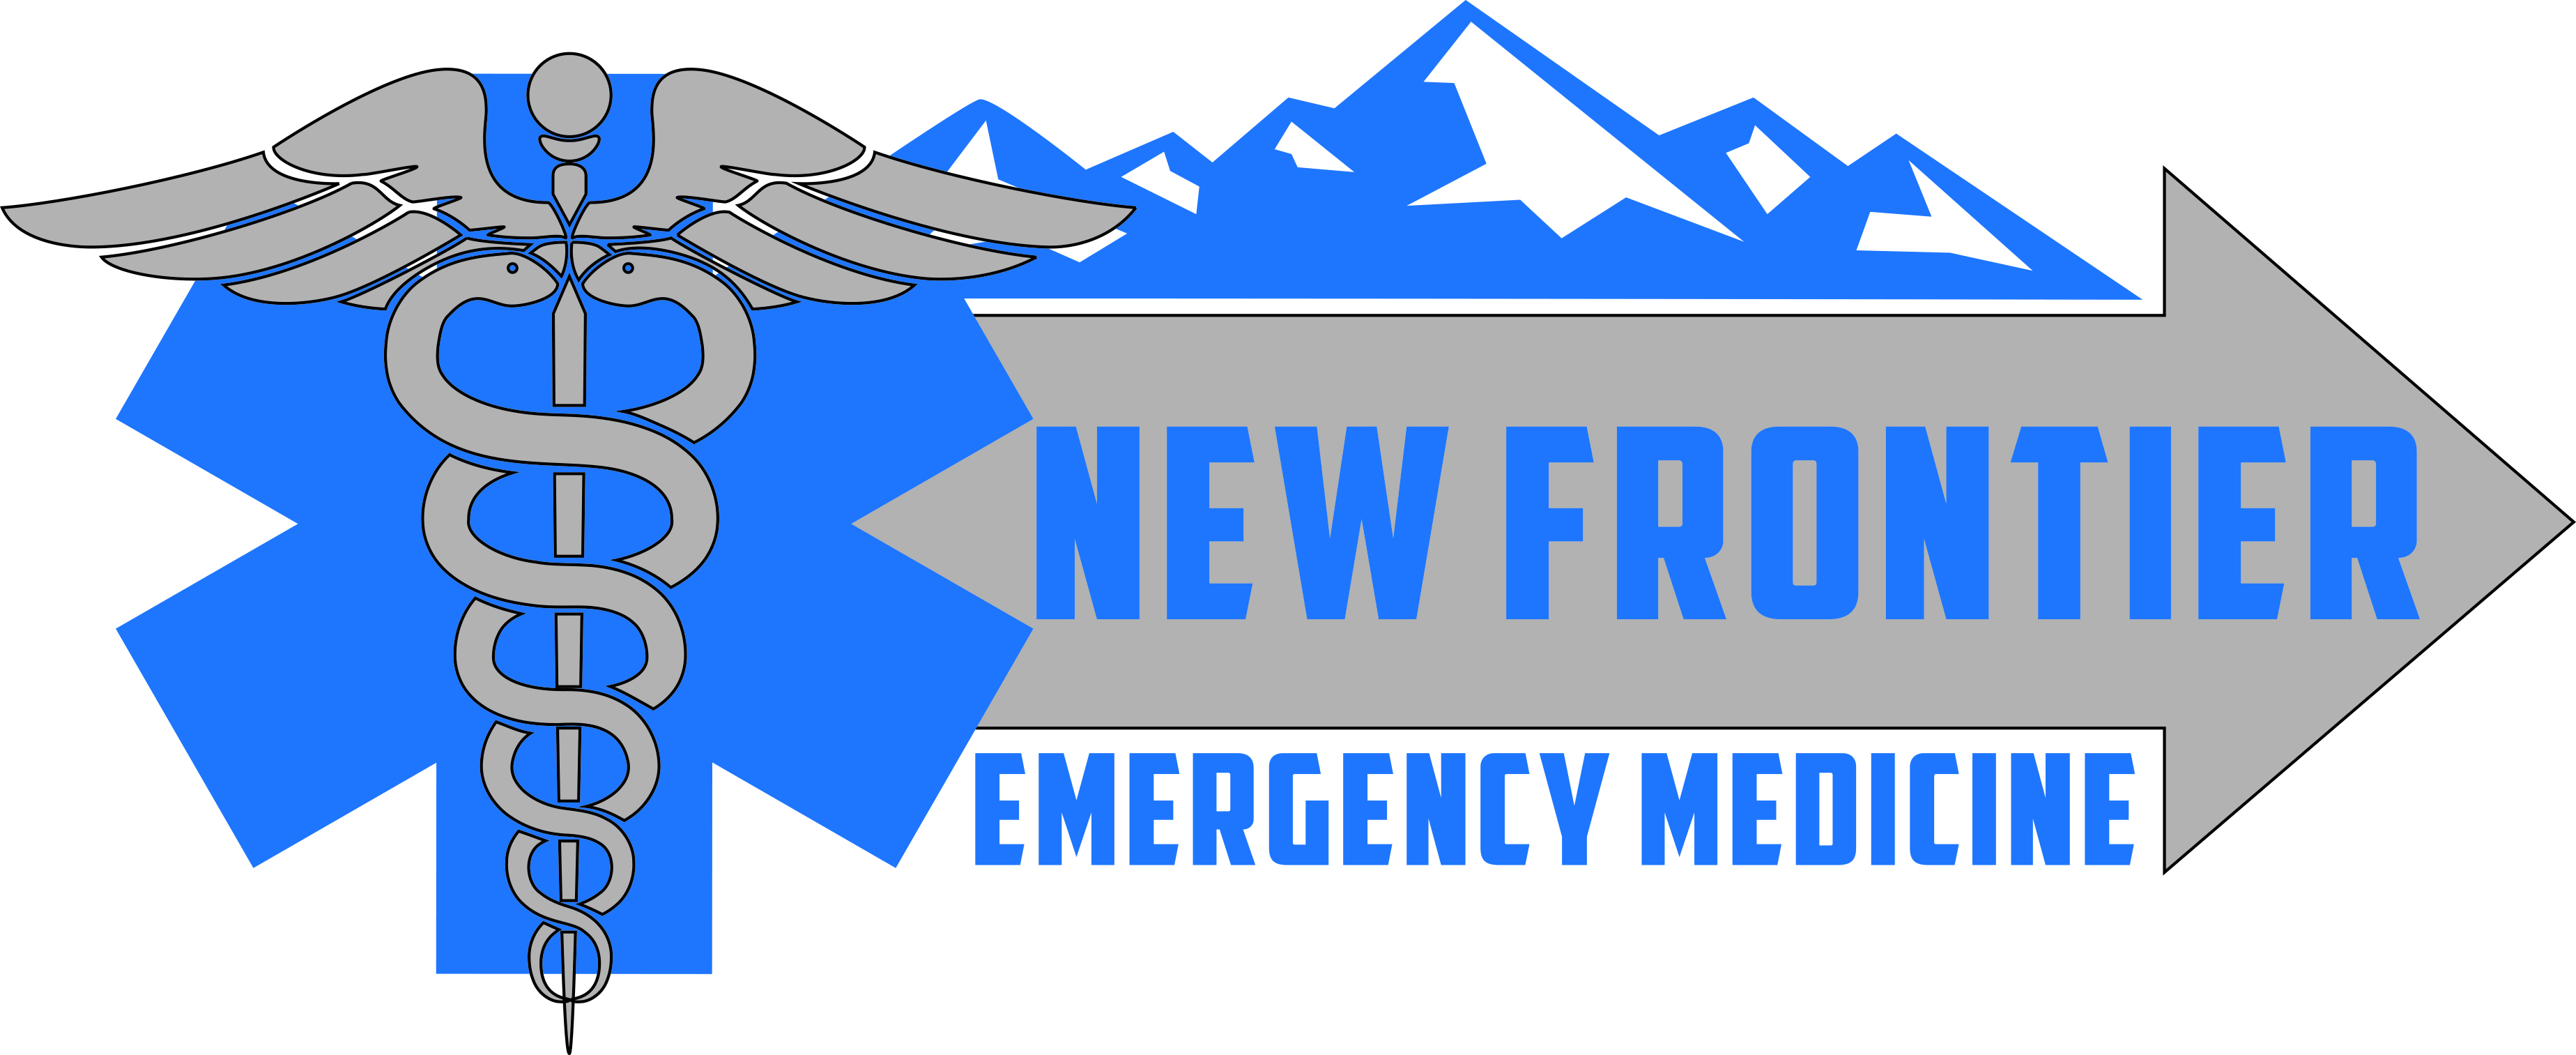 New Frontier Emergency Medicine